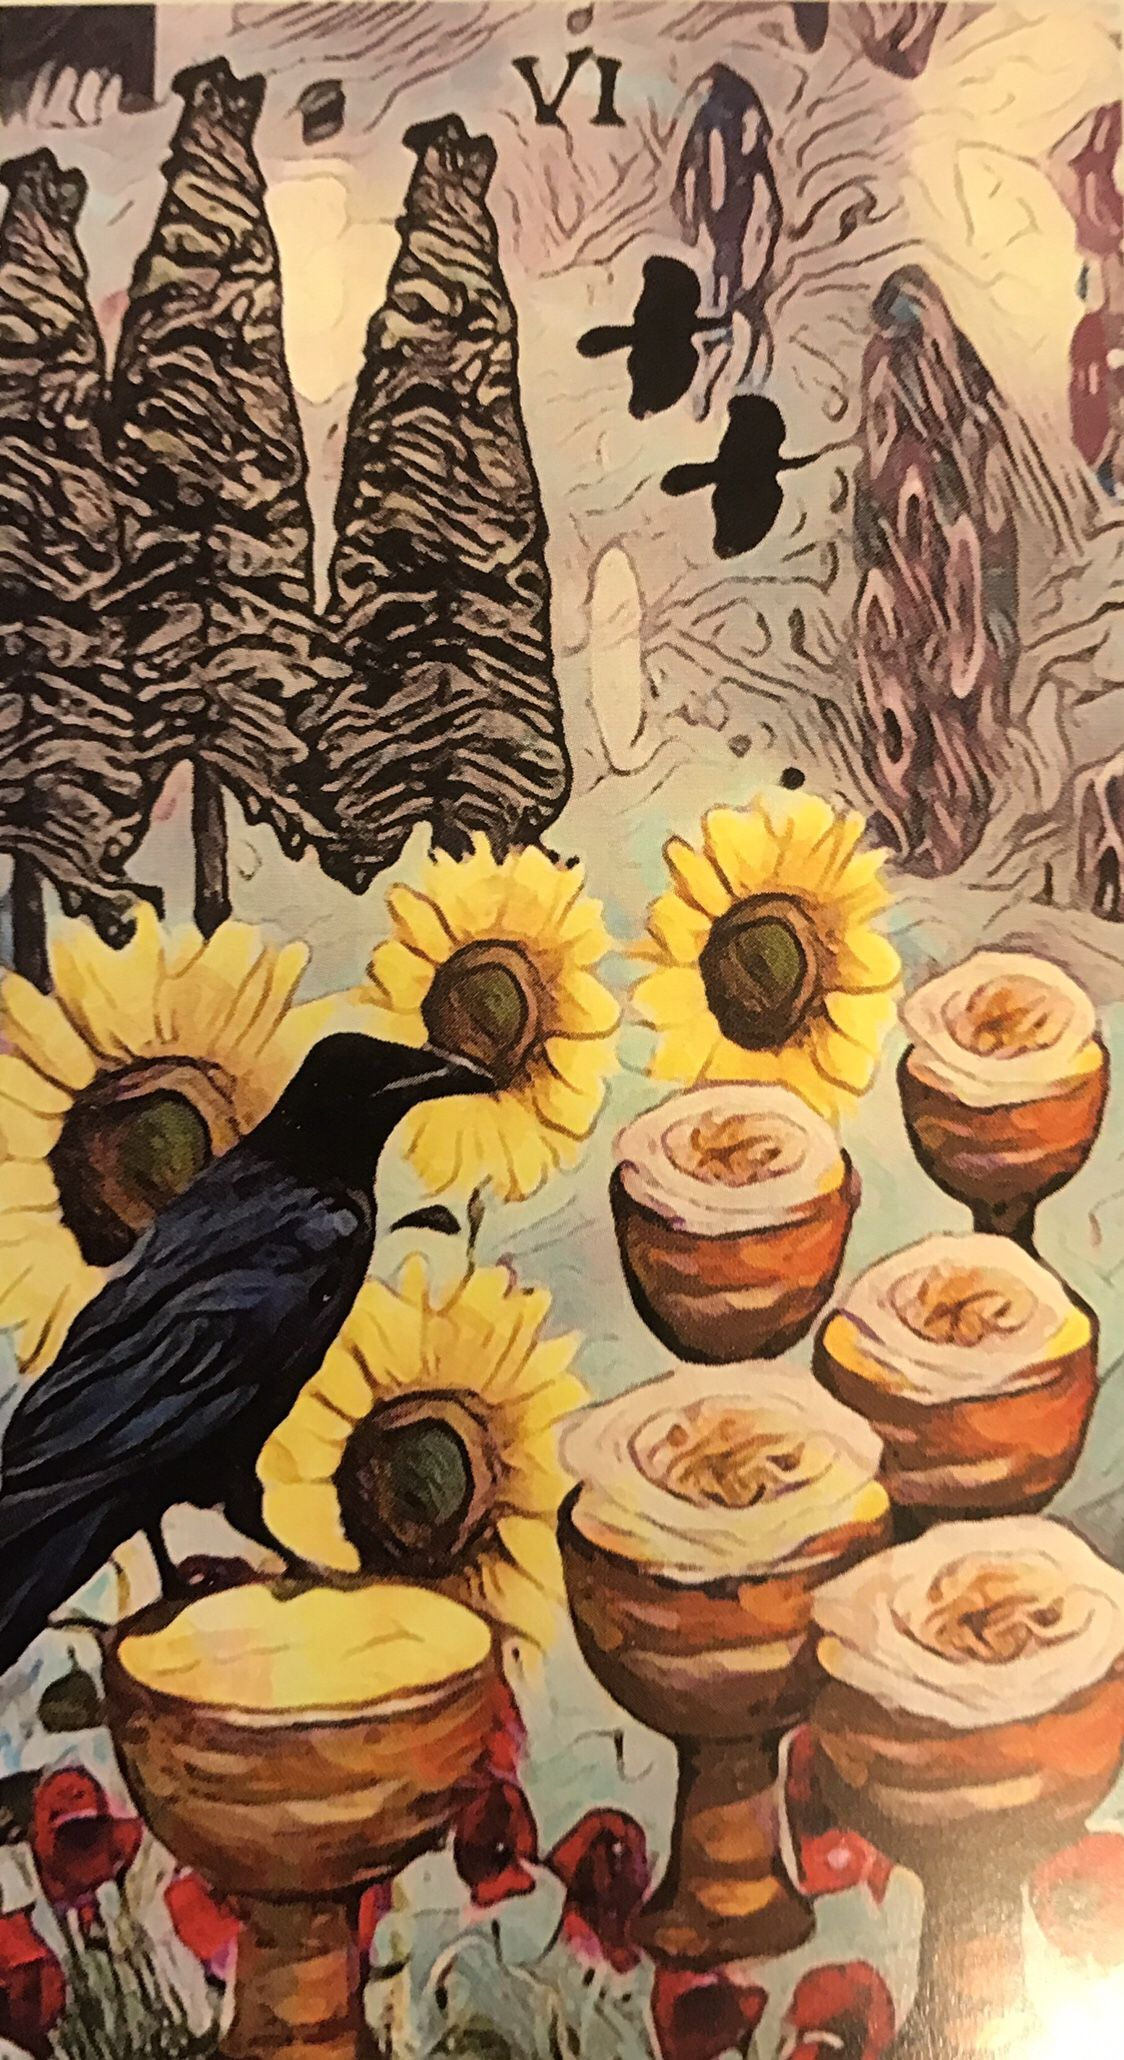 Featured card of the day 6 of cups crow tarot by mj